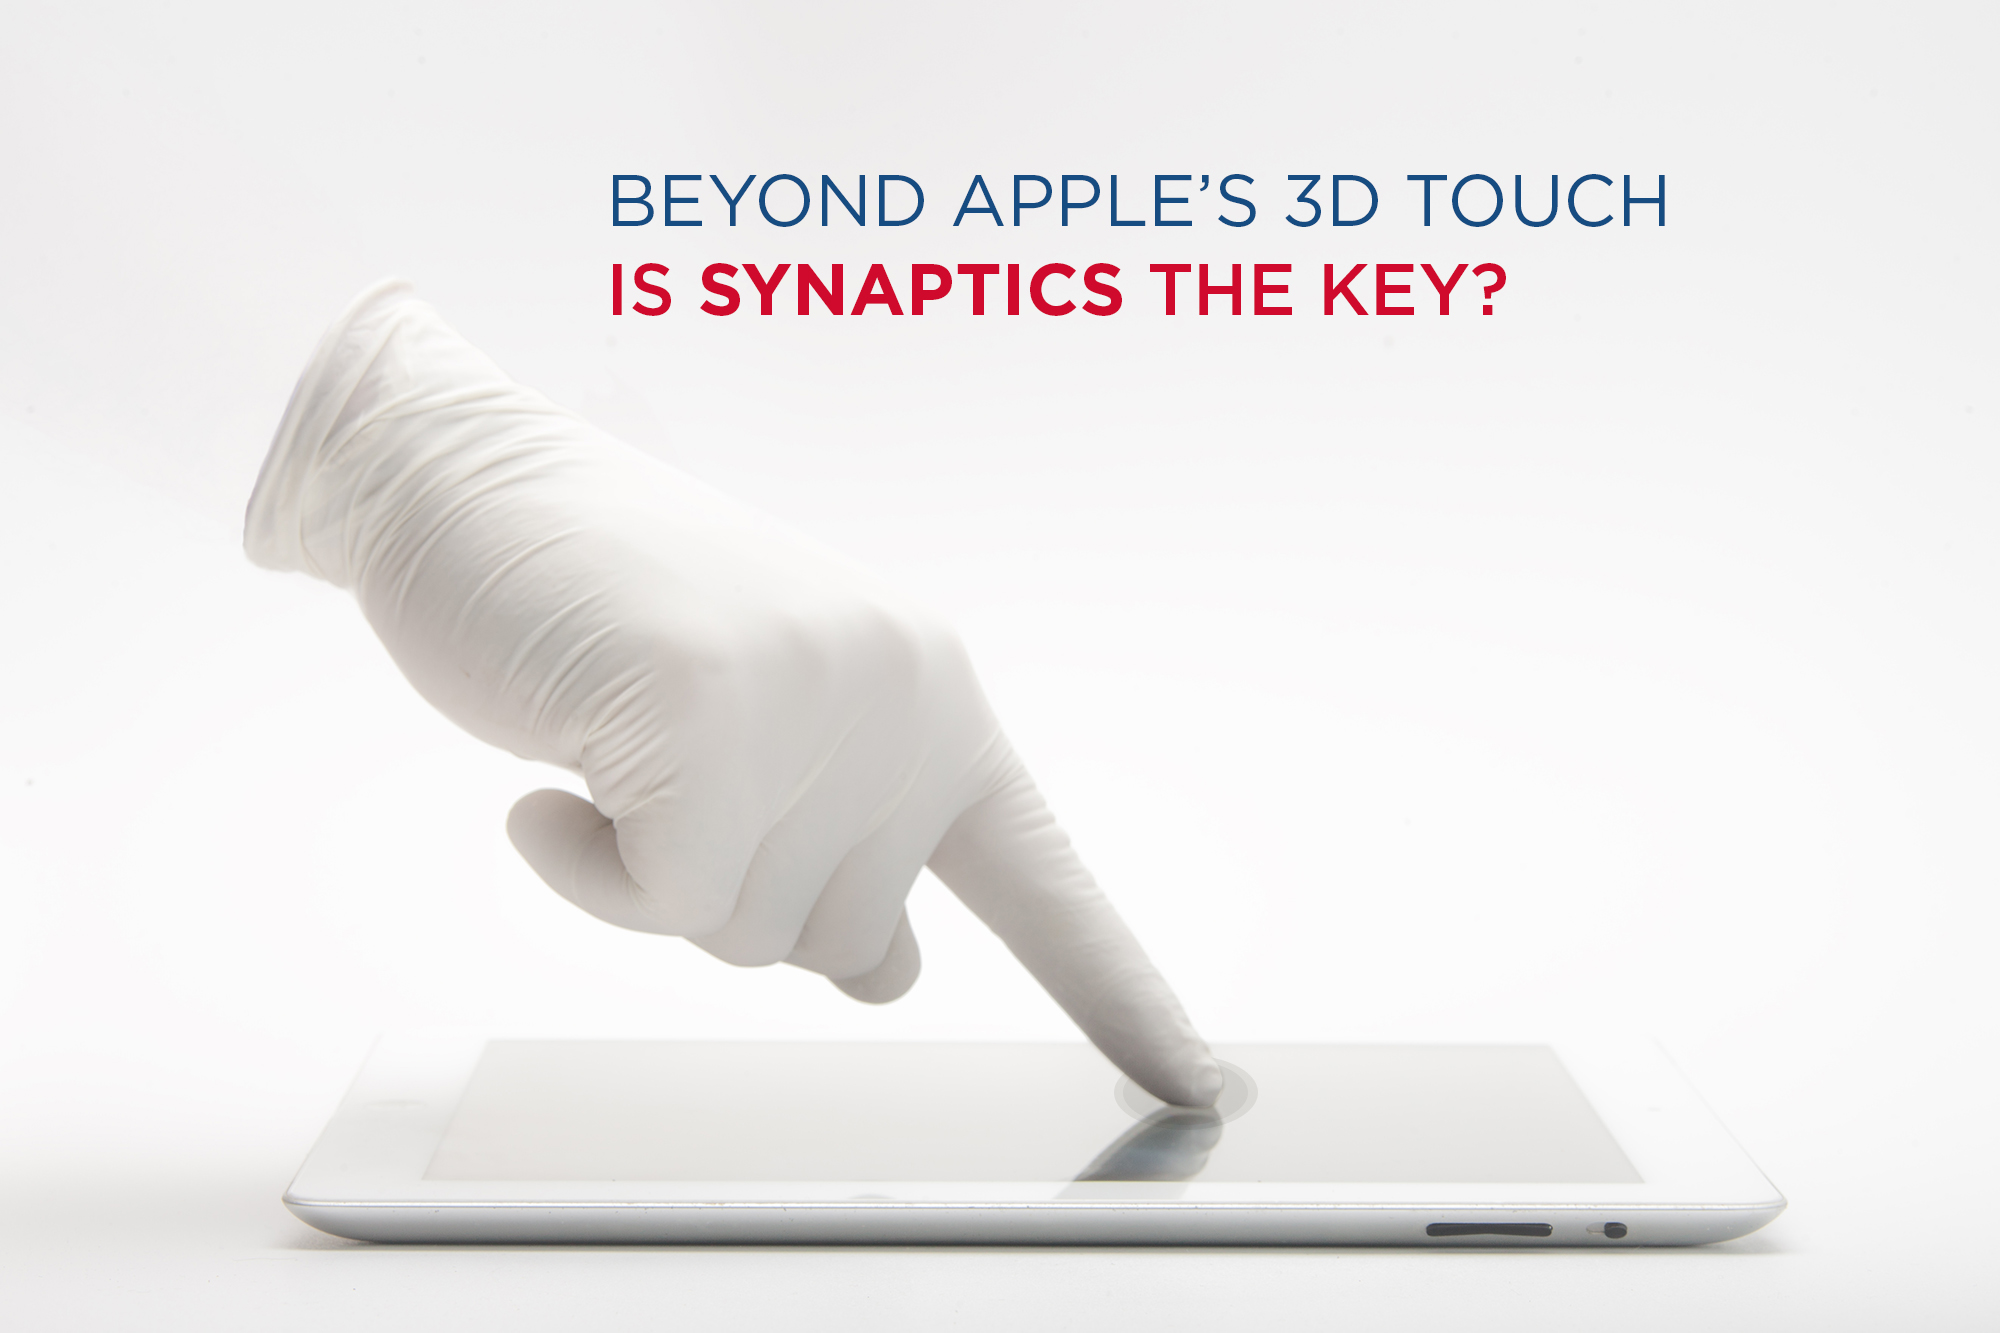 Beyond Apple's Force/3D Touch? – Is Synaptics the Key?